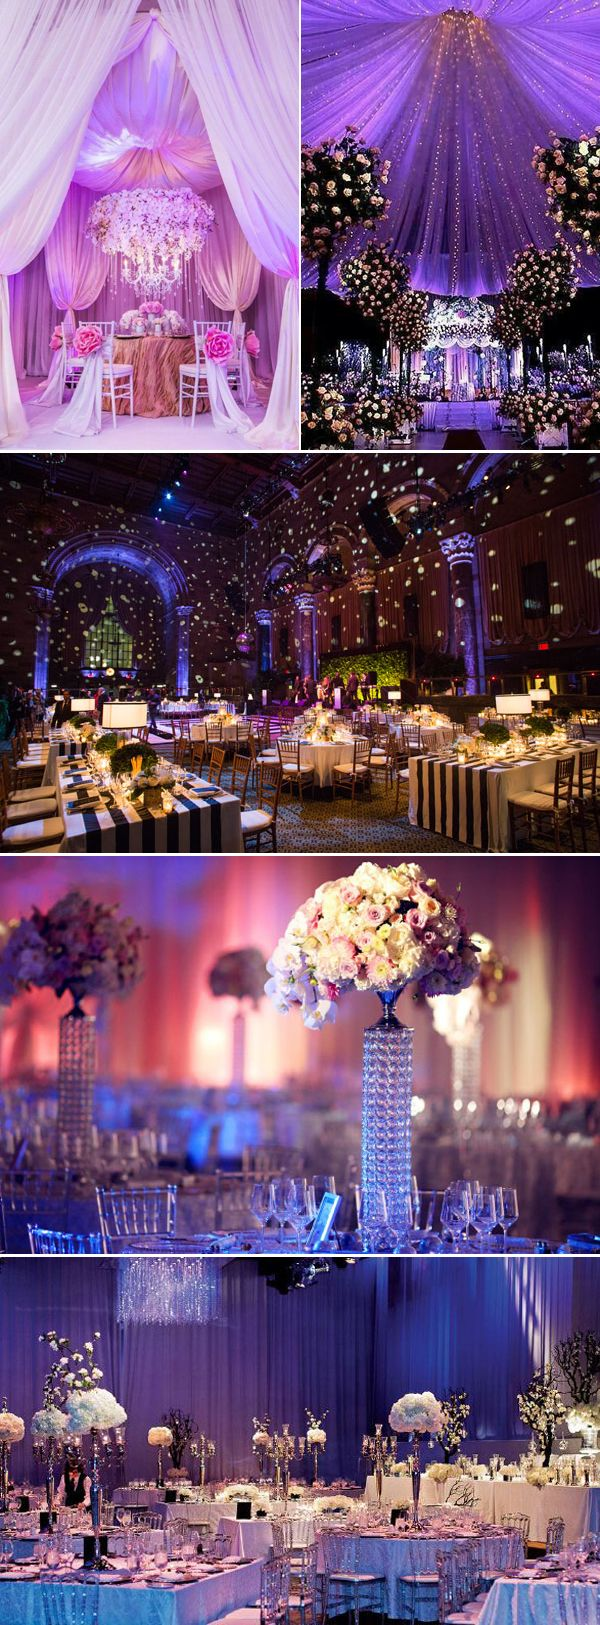 30 stunning luxury indoor reception decoration ideas you dont want to miss - Wedding Reception Decorations